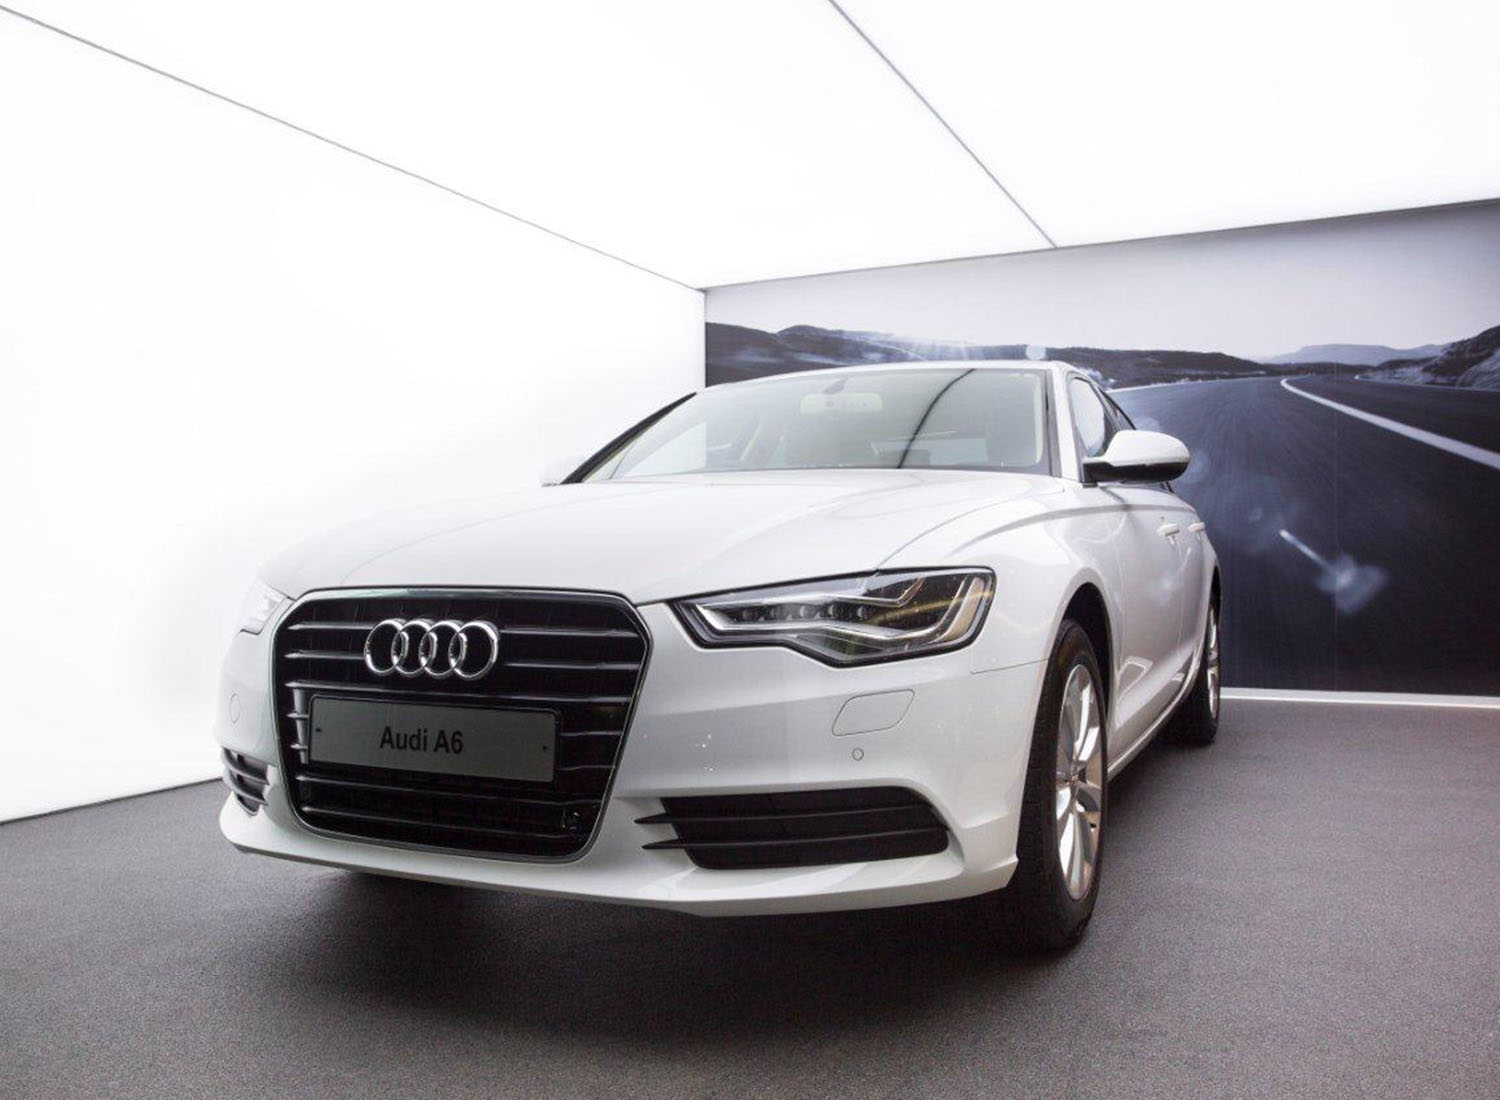 Audi - Stretch Ceiling  Translucent with Backlighting in Showroom - Showroom